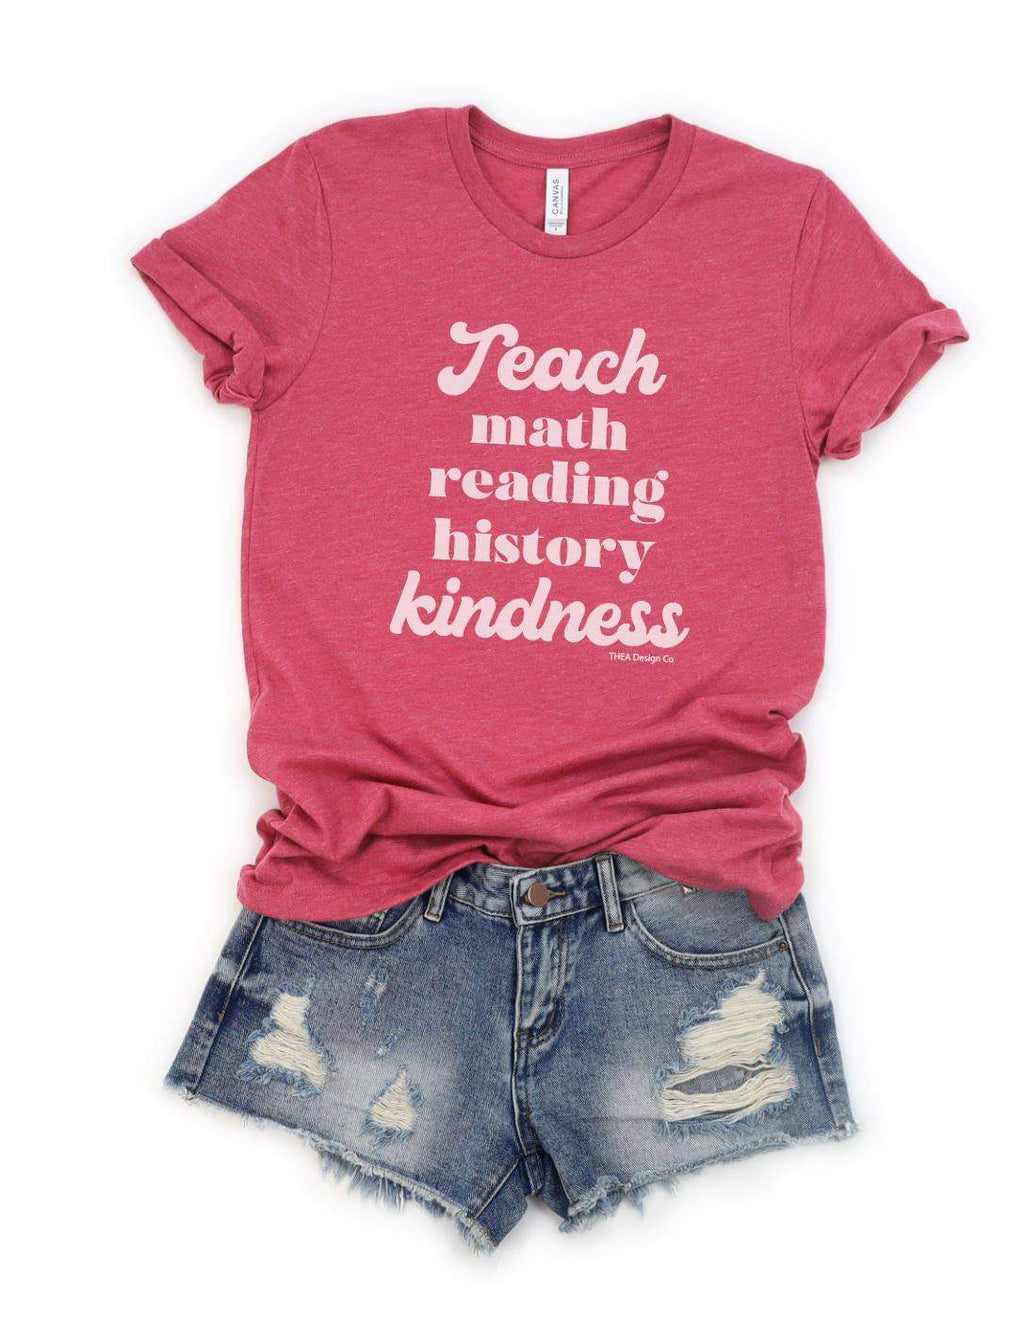 Teach Kindness